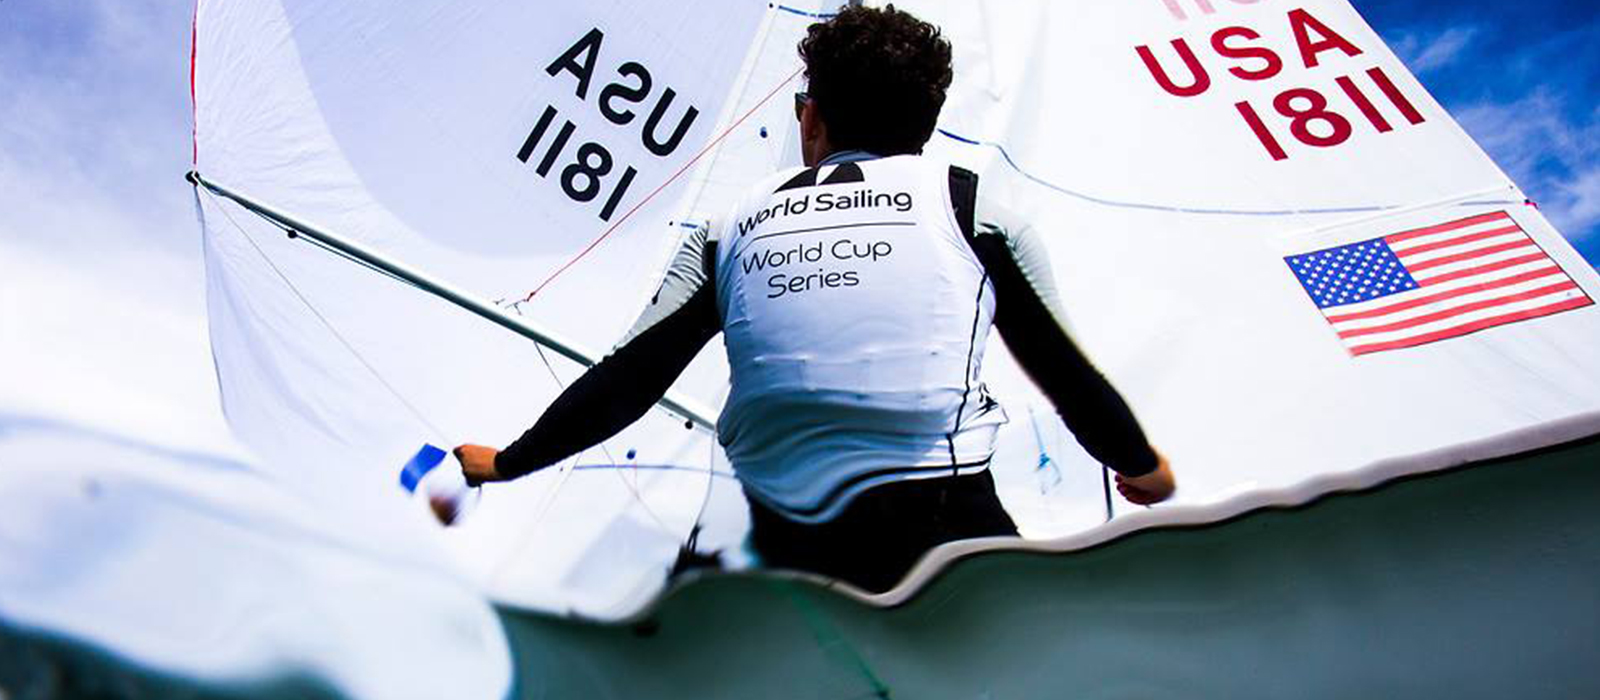 HEMPEL WORLD CUP SERIES MIAMI - Checking in with Harken sailors and coaches at the 2019 Hempel World Cup Series Miami.